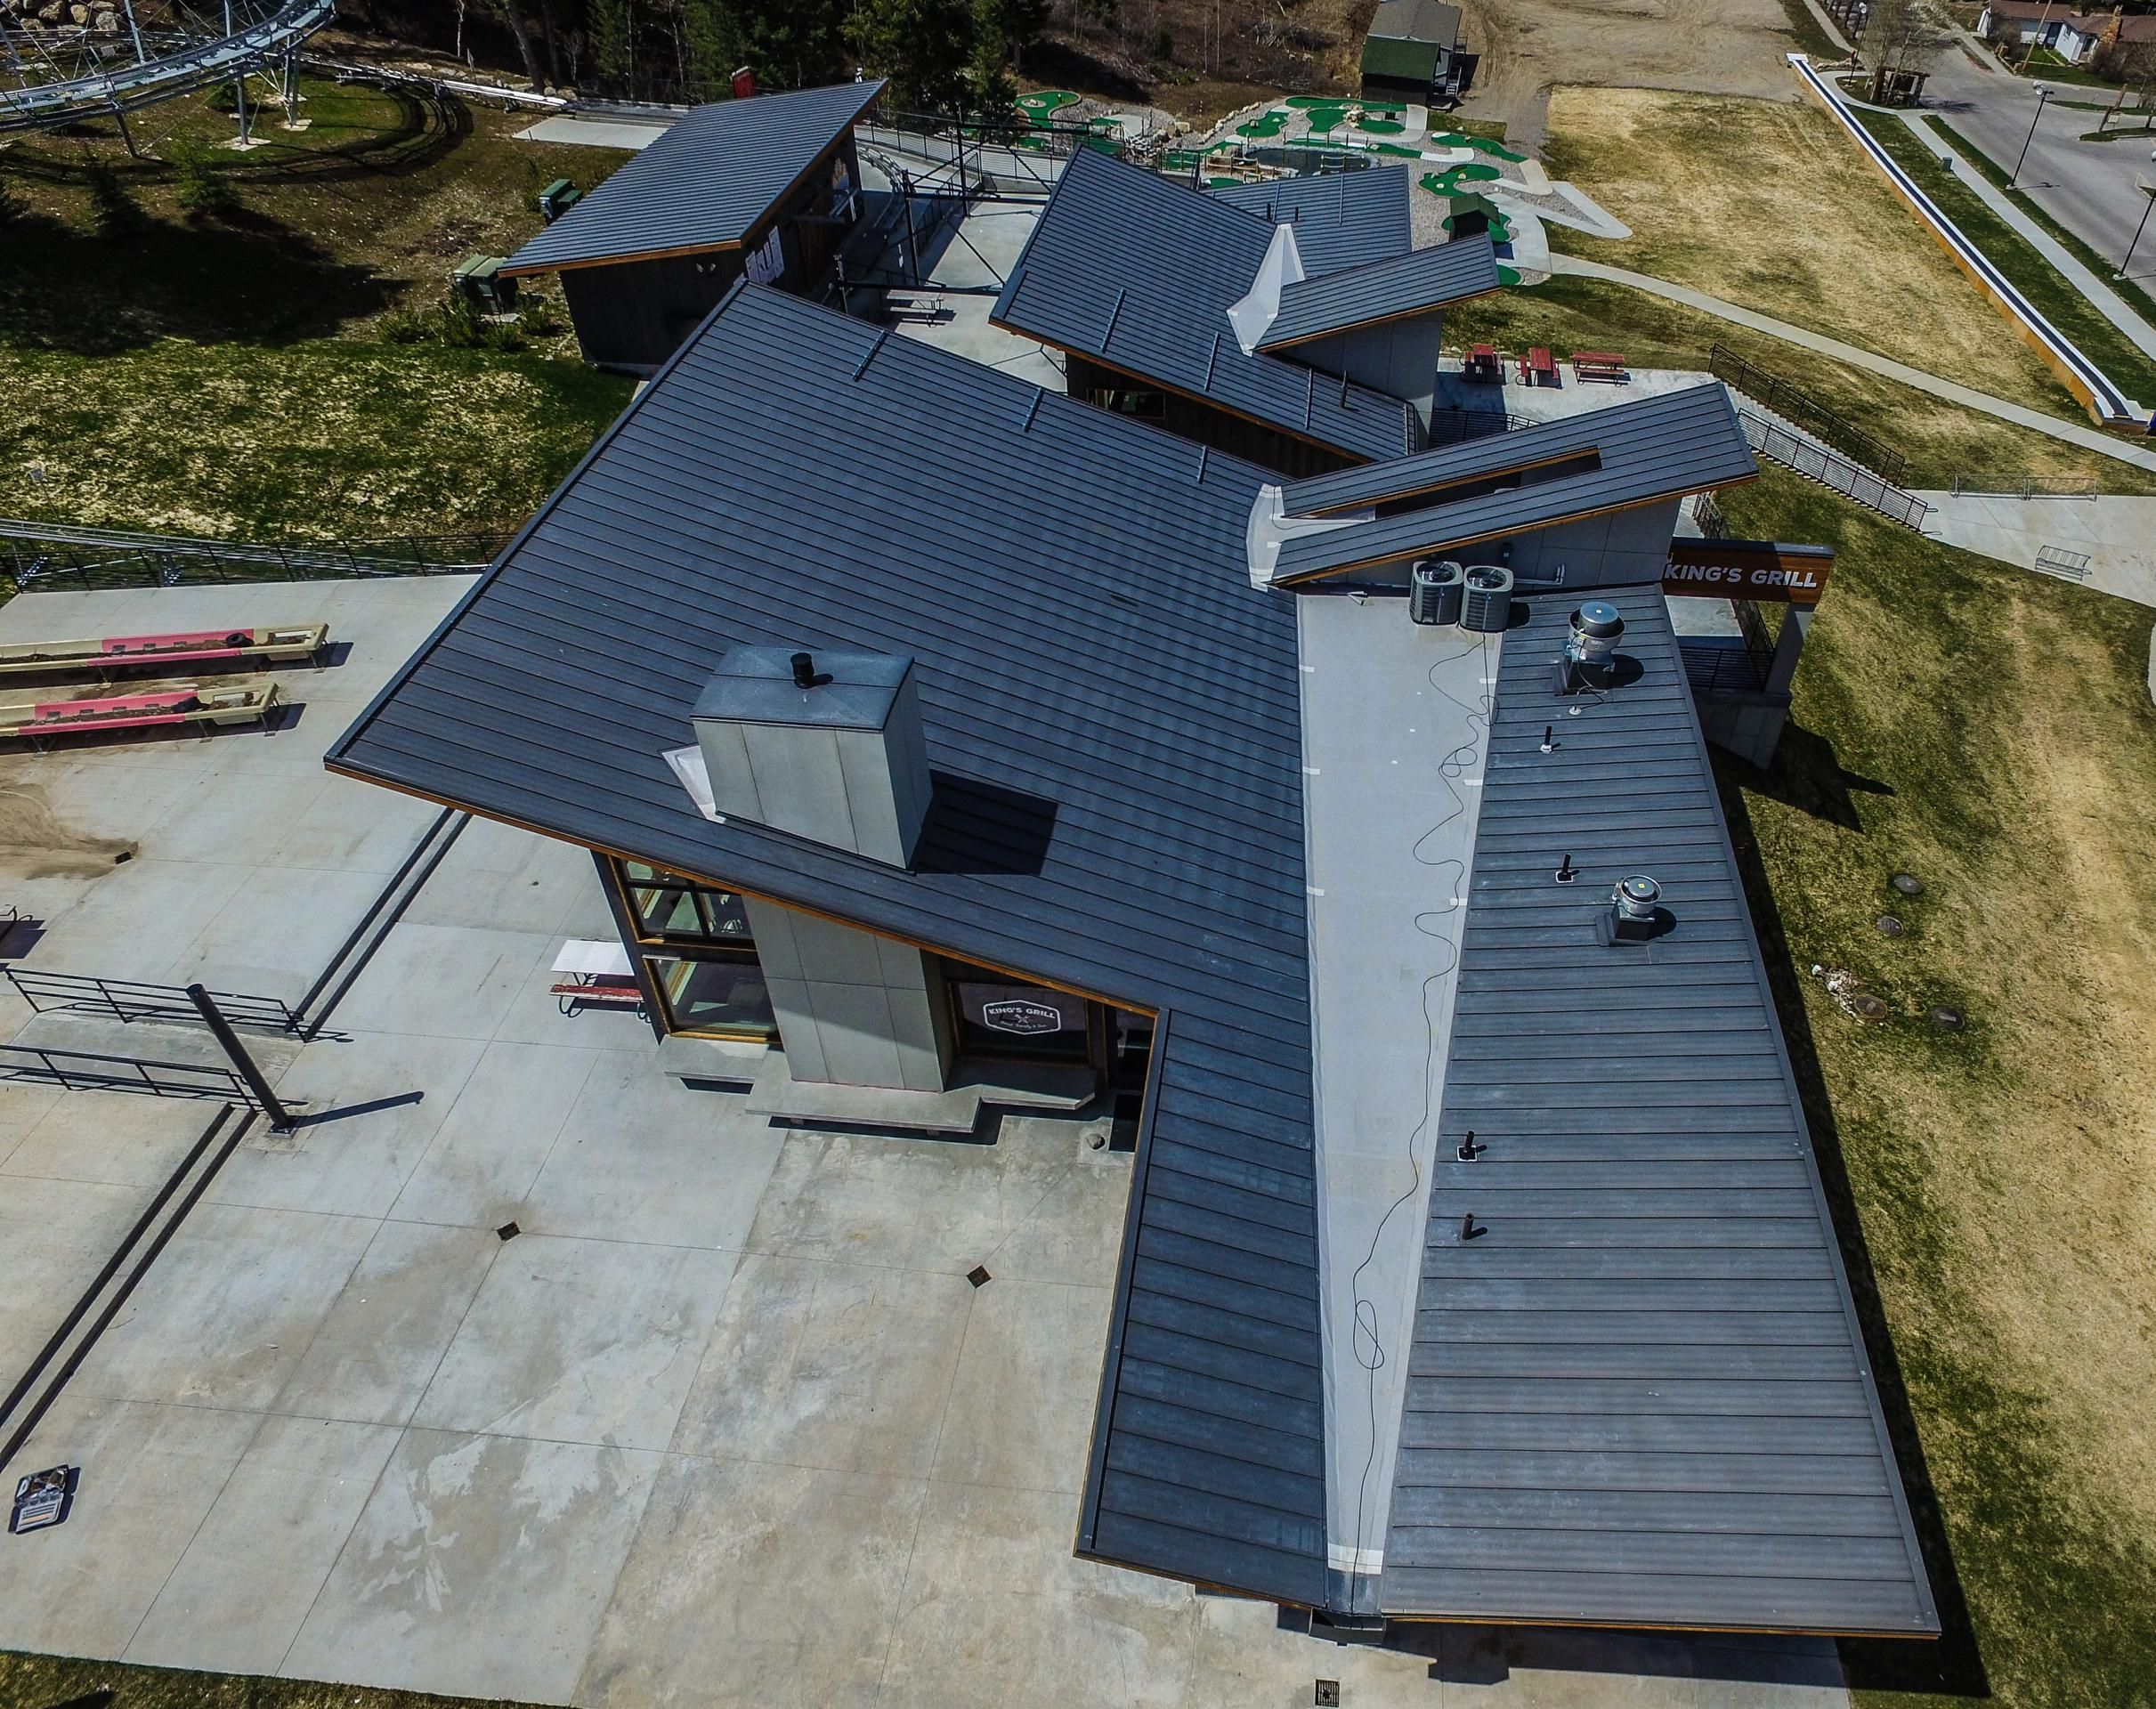 Standing Seam Metal Roofing Bonderized Patio Roof Roof Design House Roof